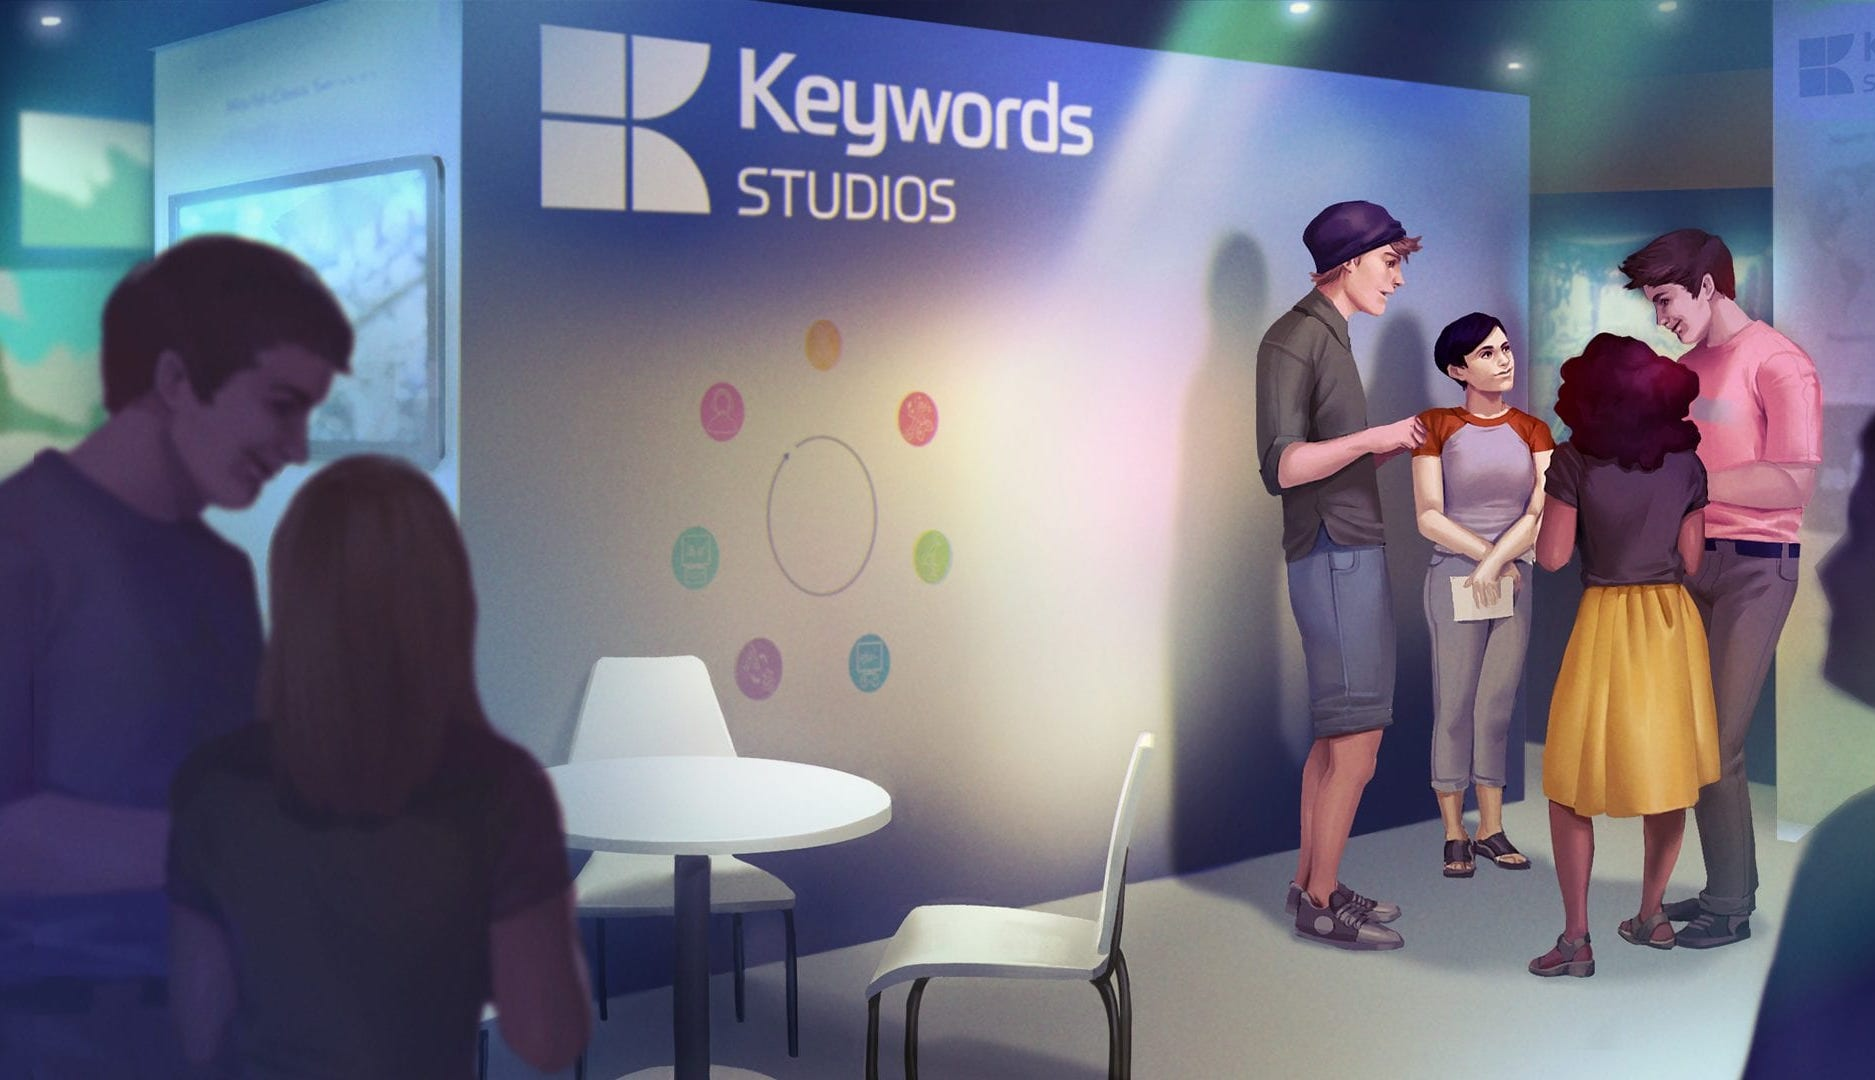 Keywords Studios acquires Coconut Lizard for $2m to strengthen game development service line